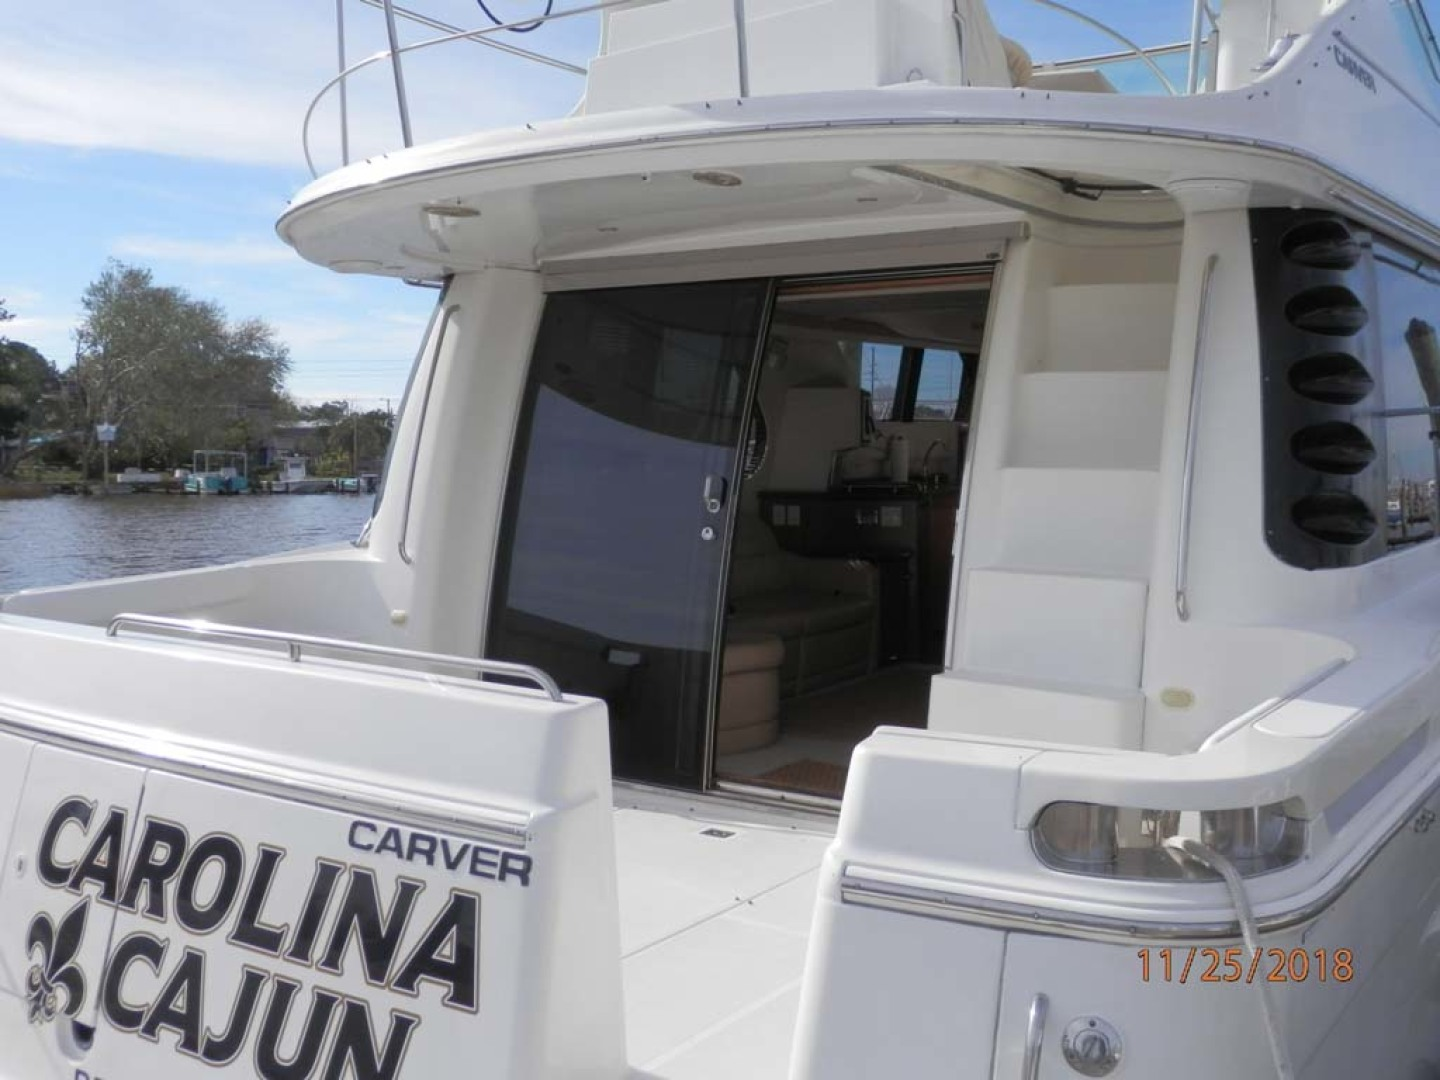 Carver-450 Voyager Pilothouse 1999-Carolina Cajun Beaufort-North Carolina-United States-Convenient Entrance on the Cockpit-1093070 | Thumbnail